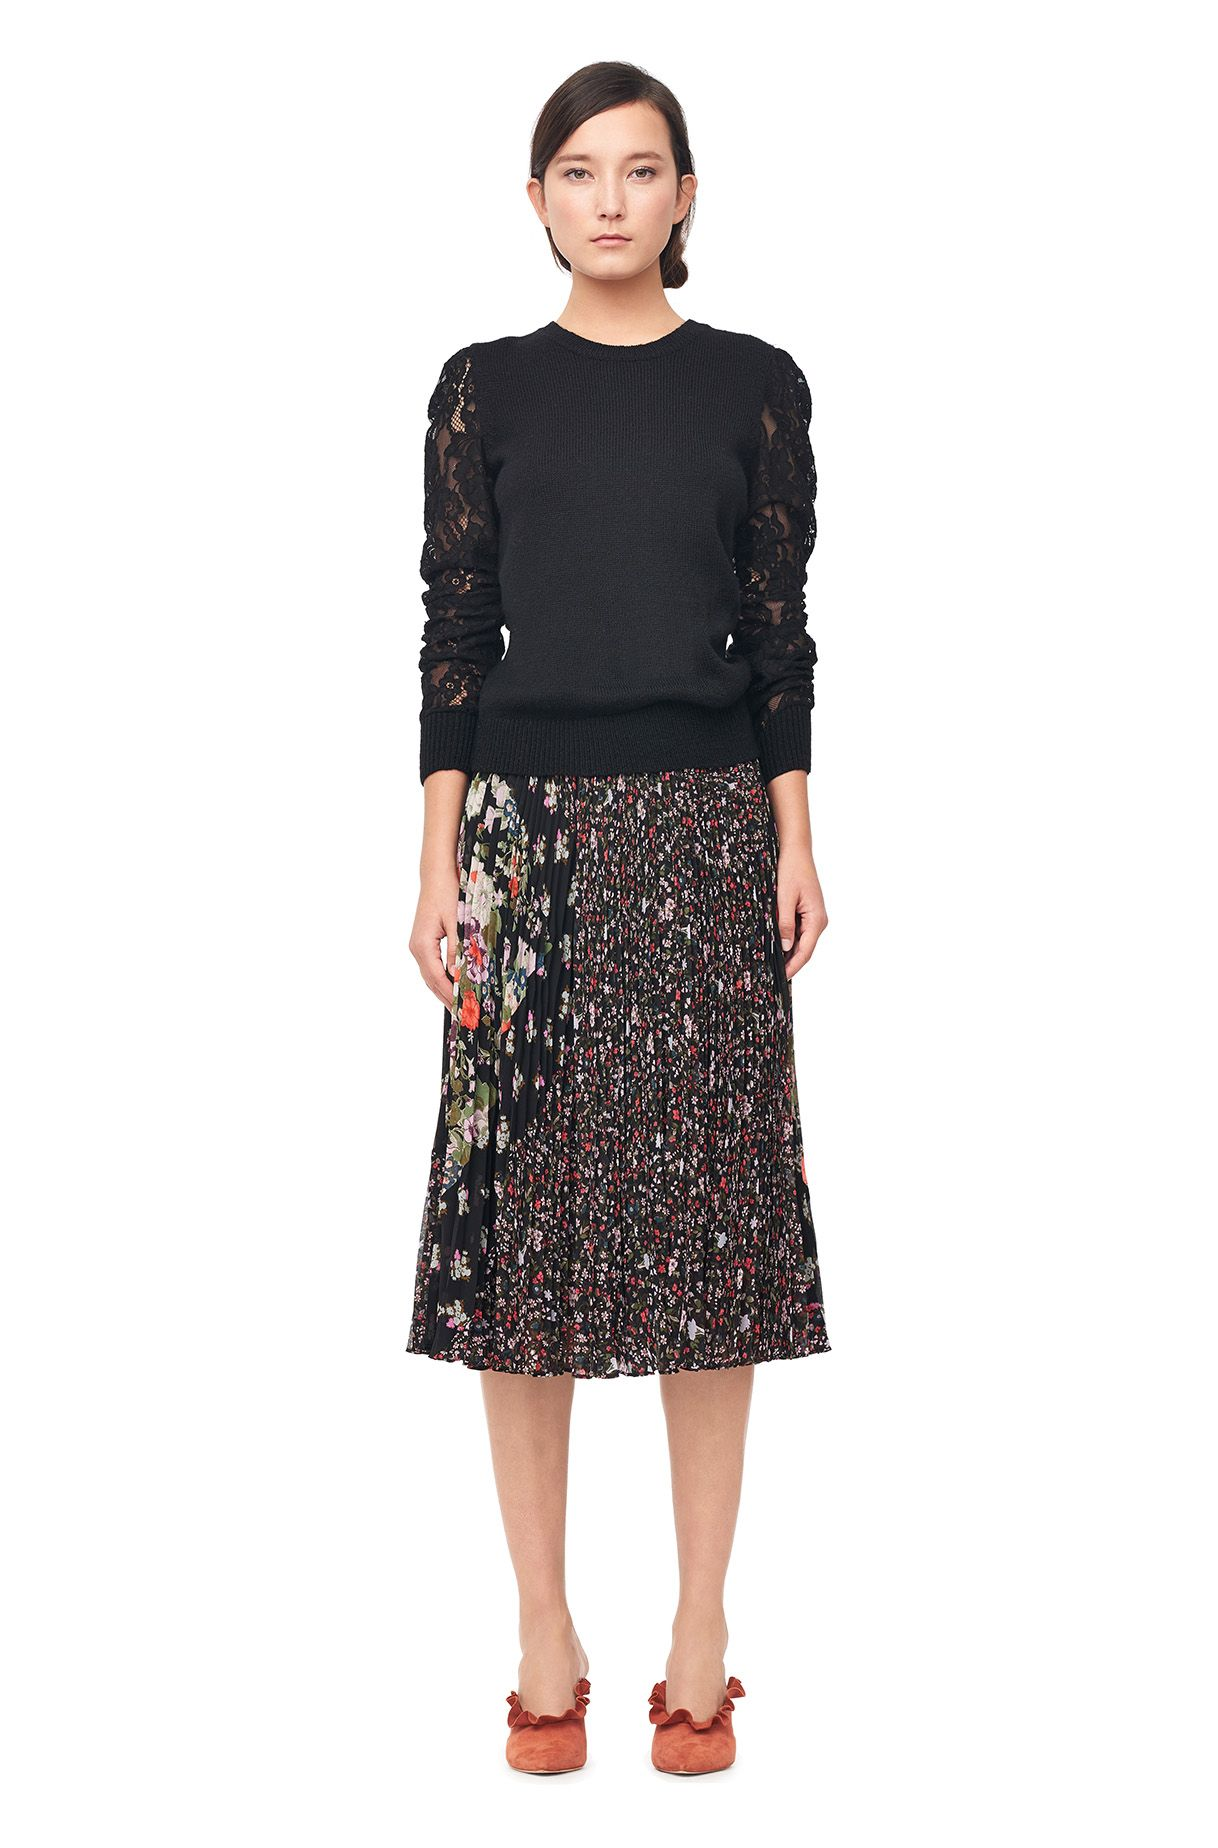 6af3aeb98e The Mixed Print Pleated Skirt offers a mix of fall florals and crisp,  textural pleats.